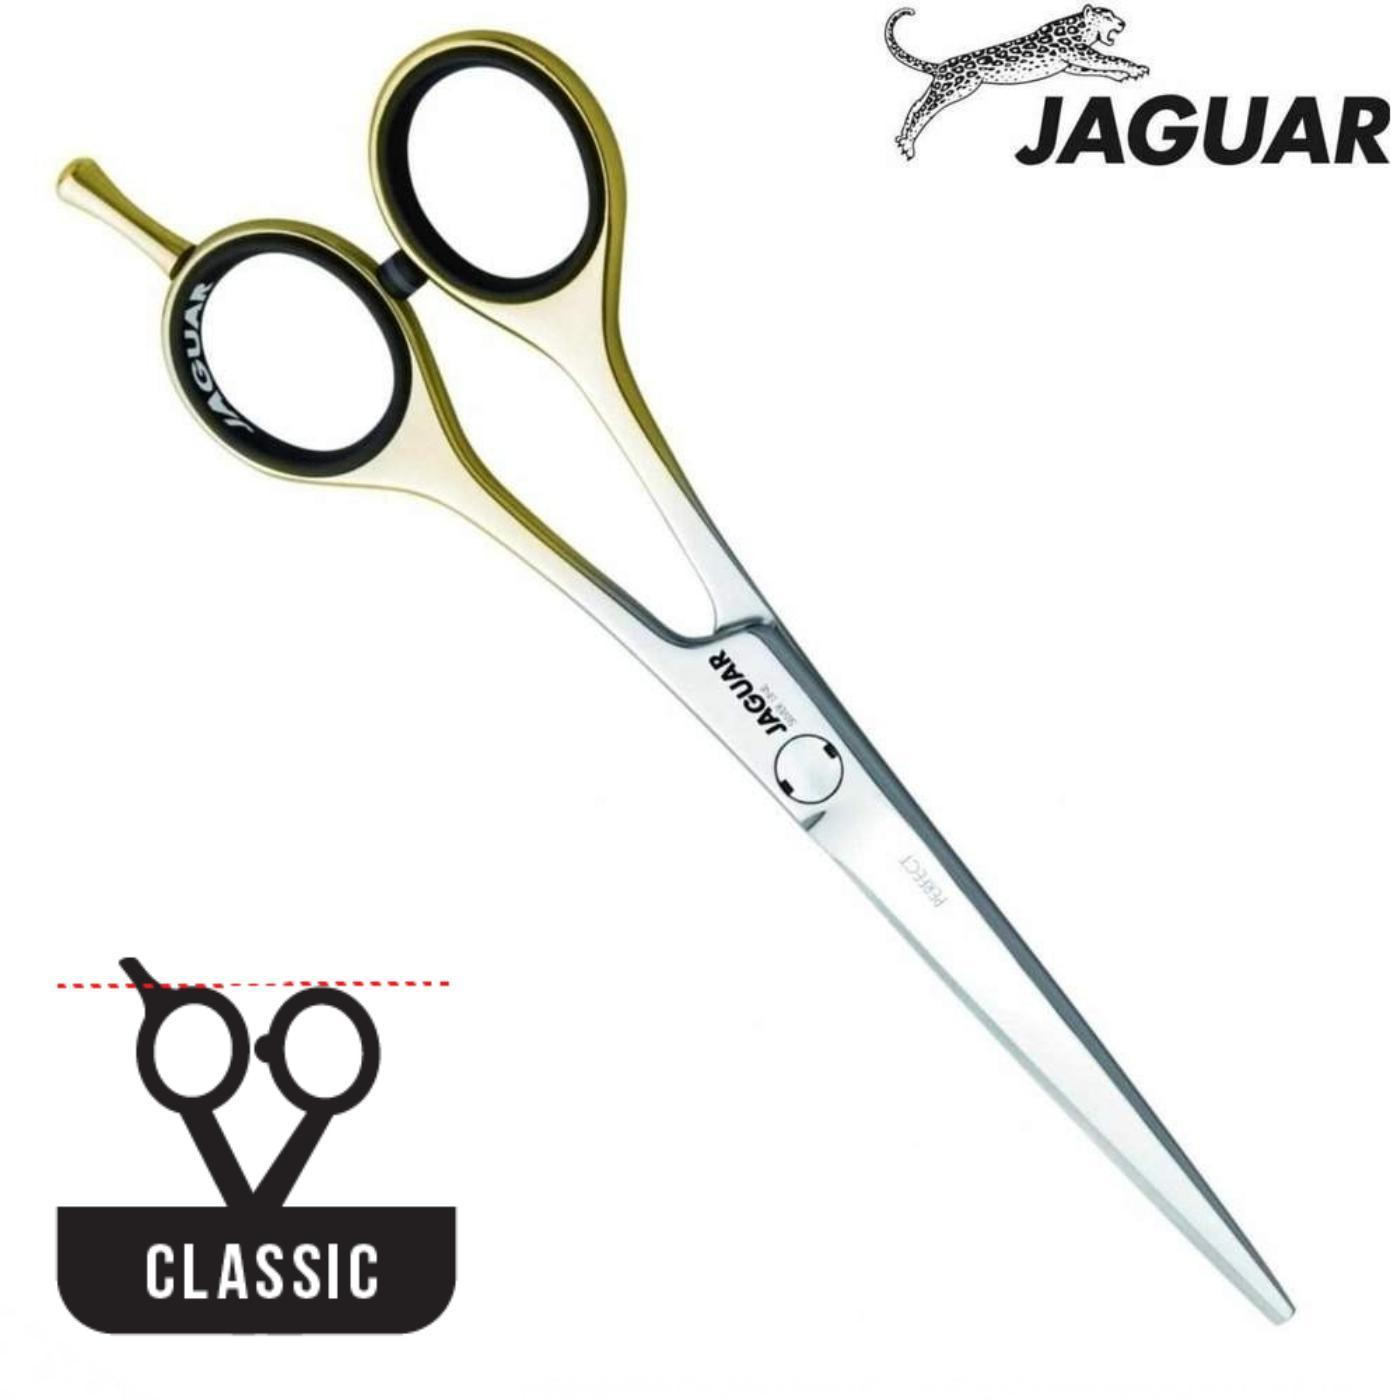 Jaguar Silver Line Perfect Hair Cutting Scissors - Japan Scissors